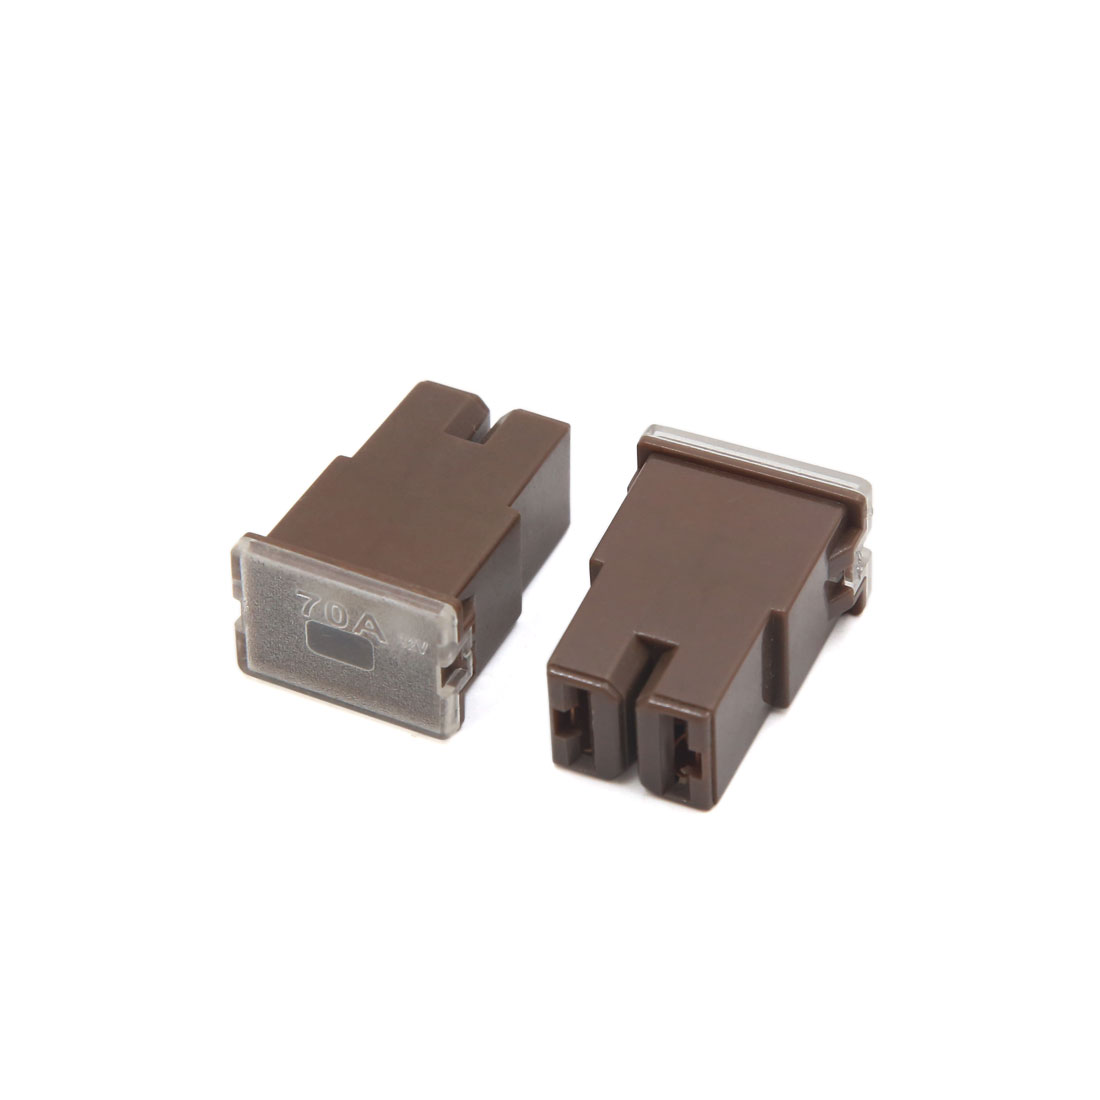 10Pcs 32V 70A Brown Plastic Female PAL Blades Fuse Connector for Cars Vehicle - image 2 de 3